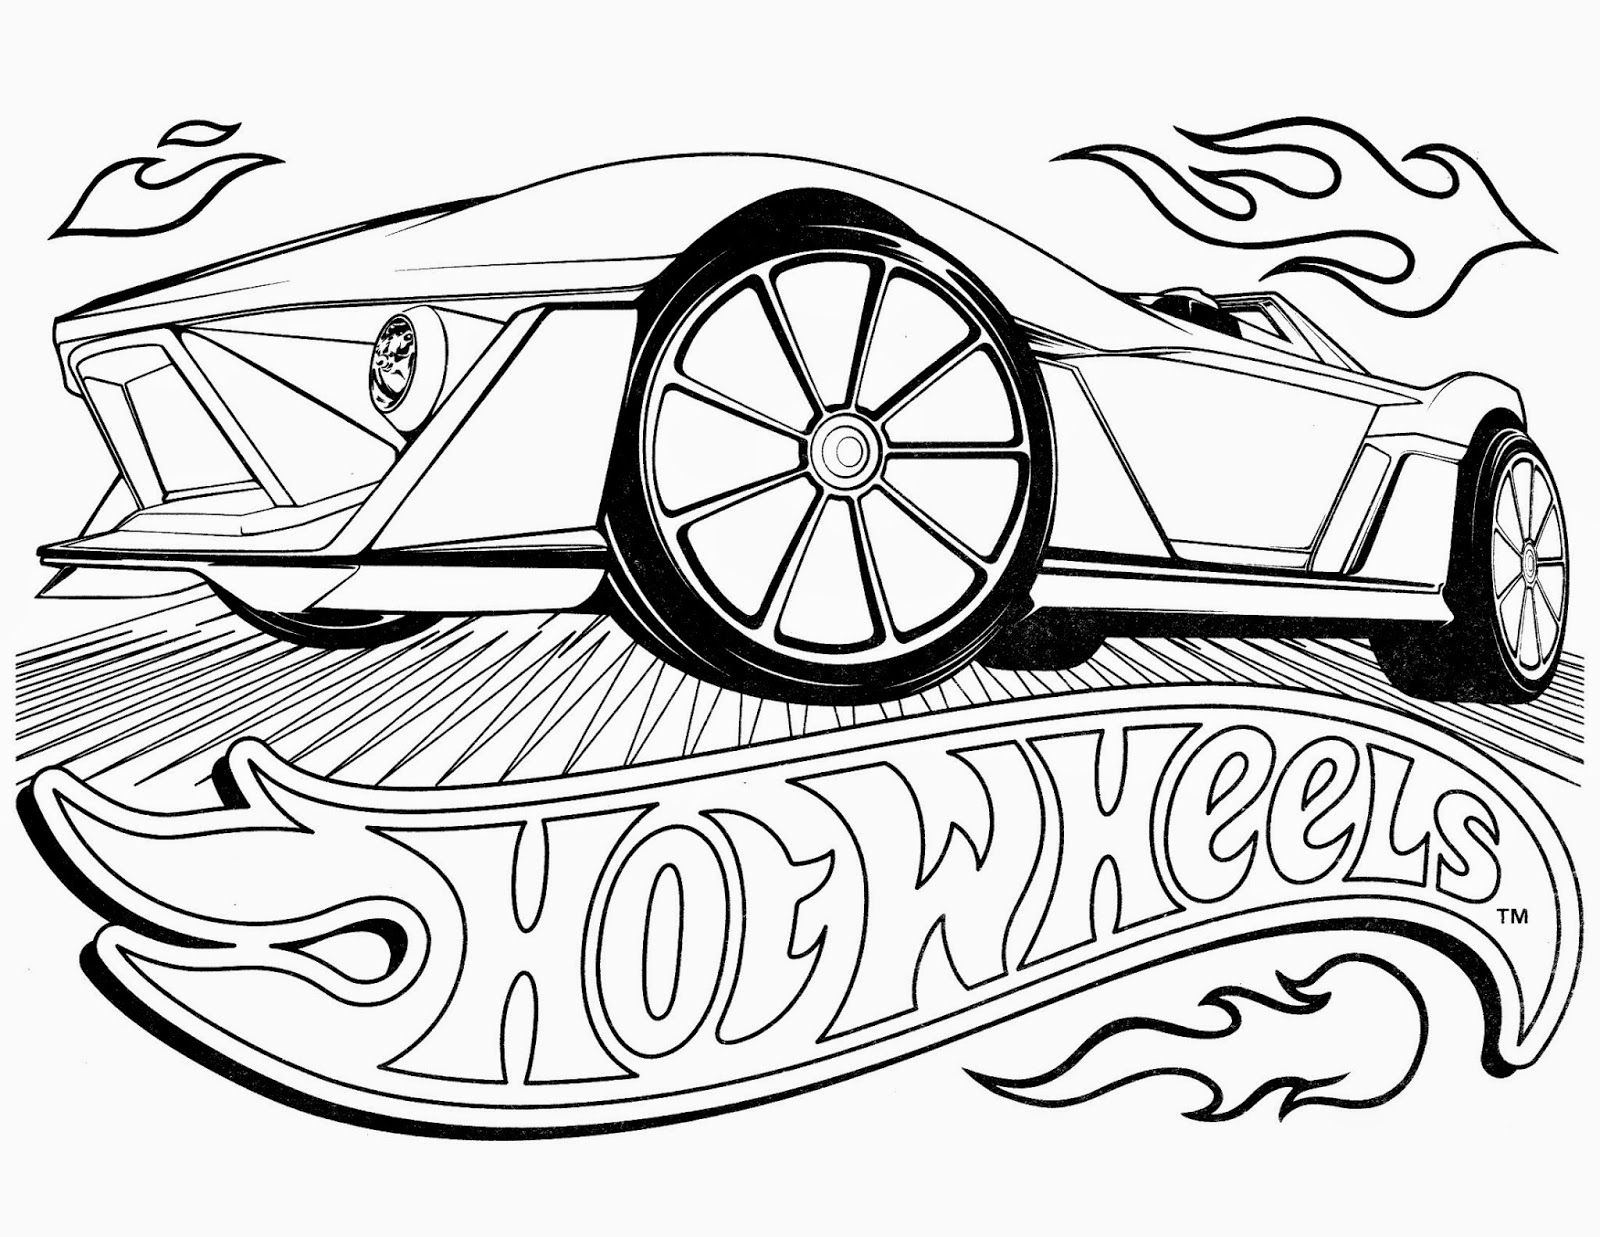 hot wheels cars pictures to color hot wheels racing league hot wheels coloring pages set 3 pictures hot cars to wheels color